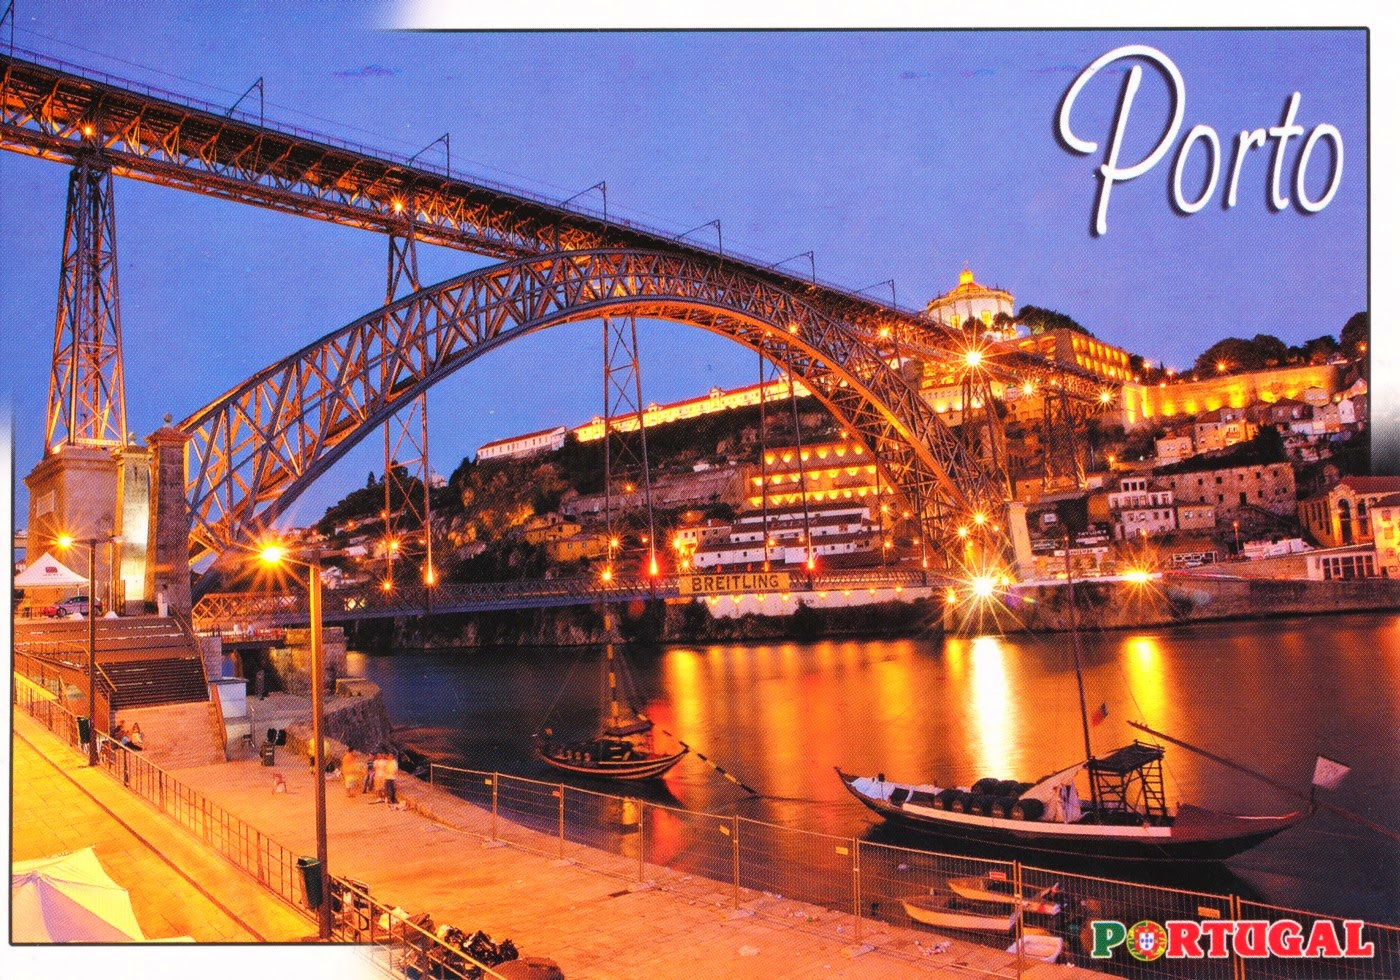 postcard, porto, portugal, harbor, bridge, steel